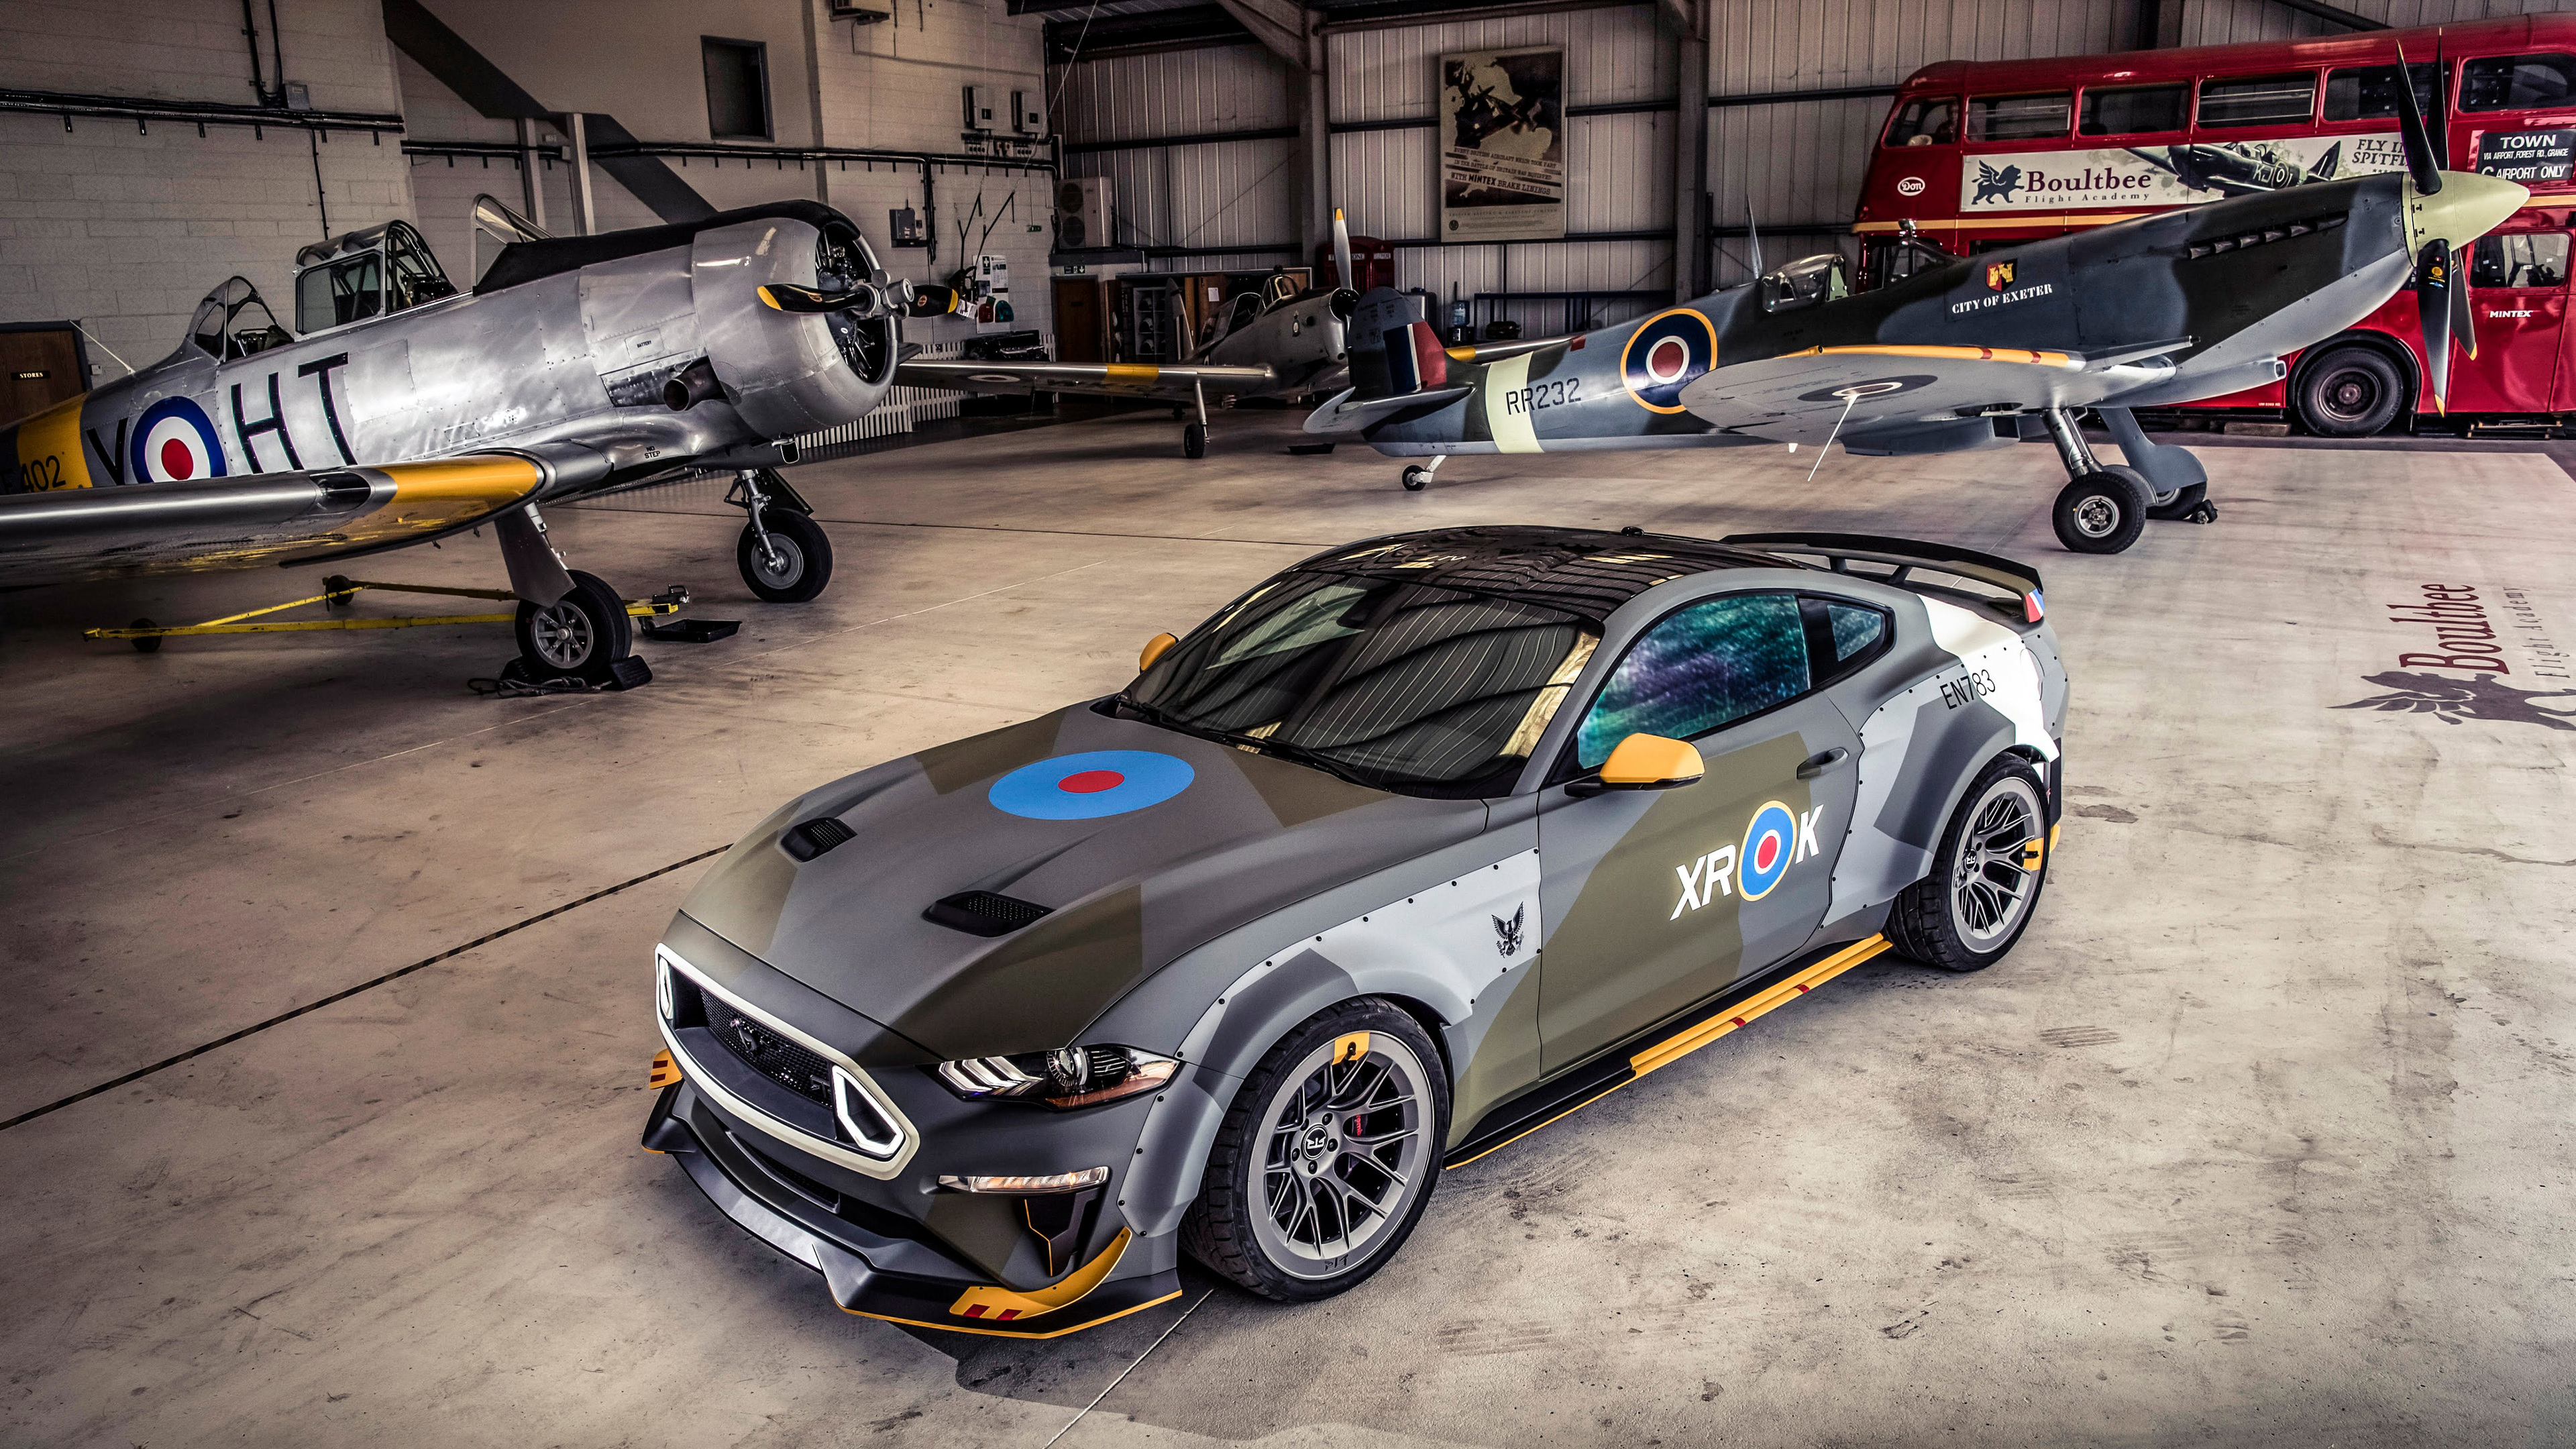 ford eagle squadron mustang gt 2018 4k 1539112383 - Ford Eagle Squadron Mustang GT 2018 4K - mustang wallpapers, hd-wallpapers, ford wallpapers, ford mustang wallpapers, 4k-wallpapers, 2018 cars wallpapers